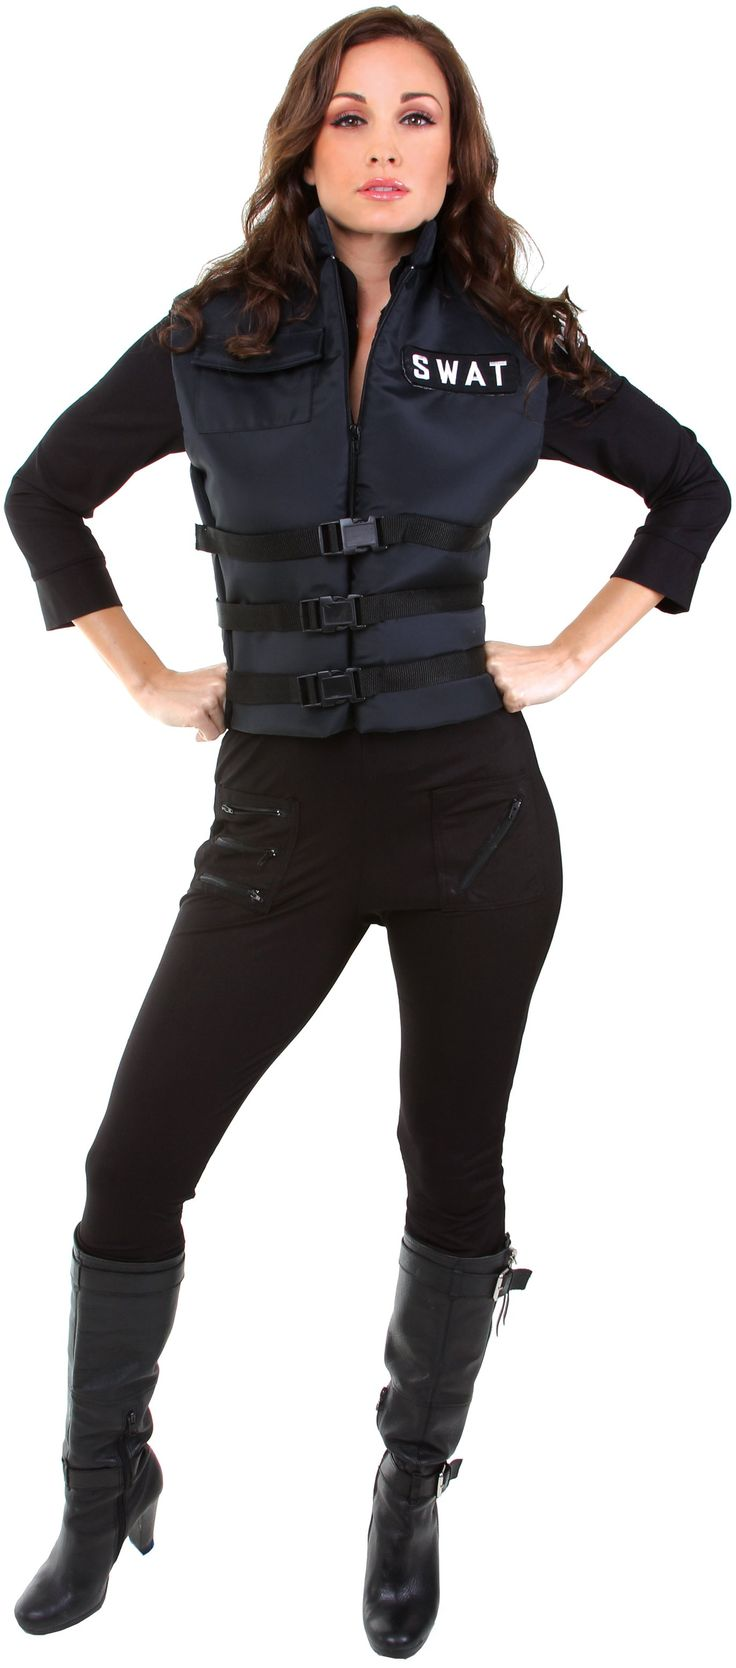 Lady SWAT Adult Costume from BuyCostumes.com